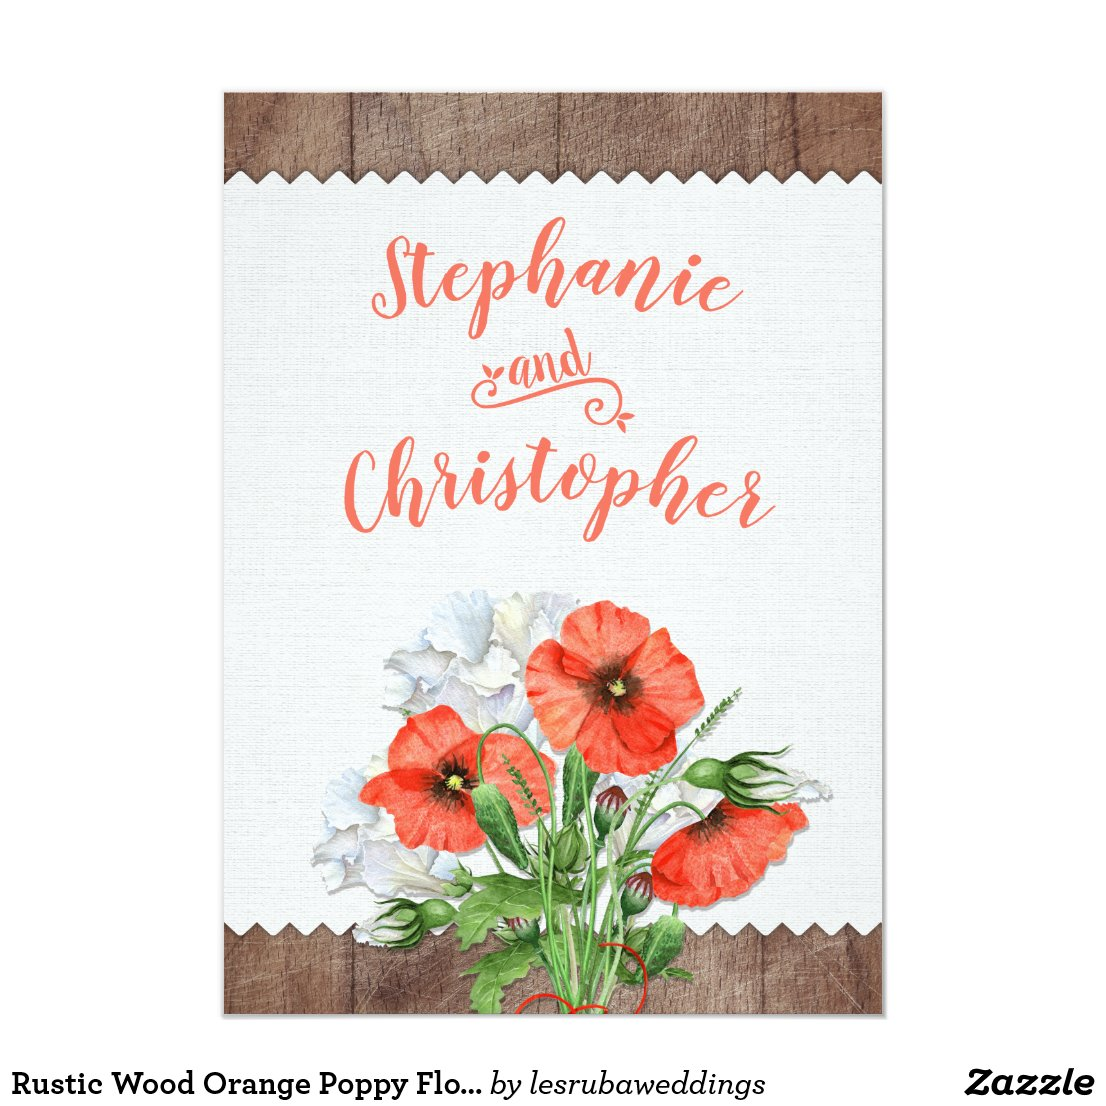 Rustic Wood Orange Poppy Floral Wedding Invitation